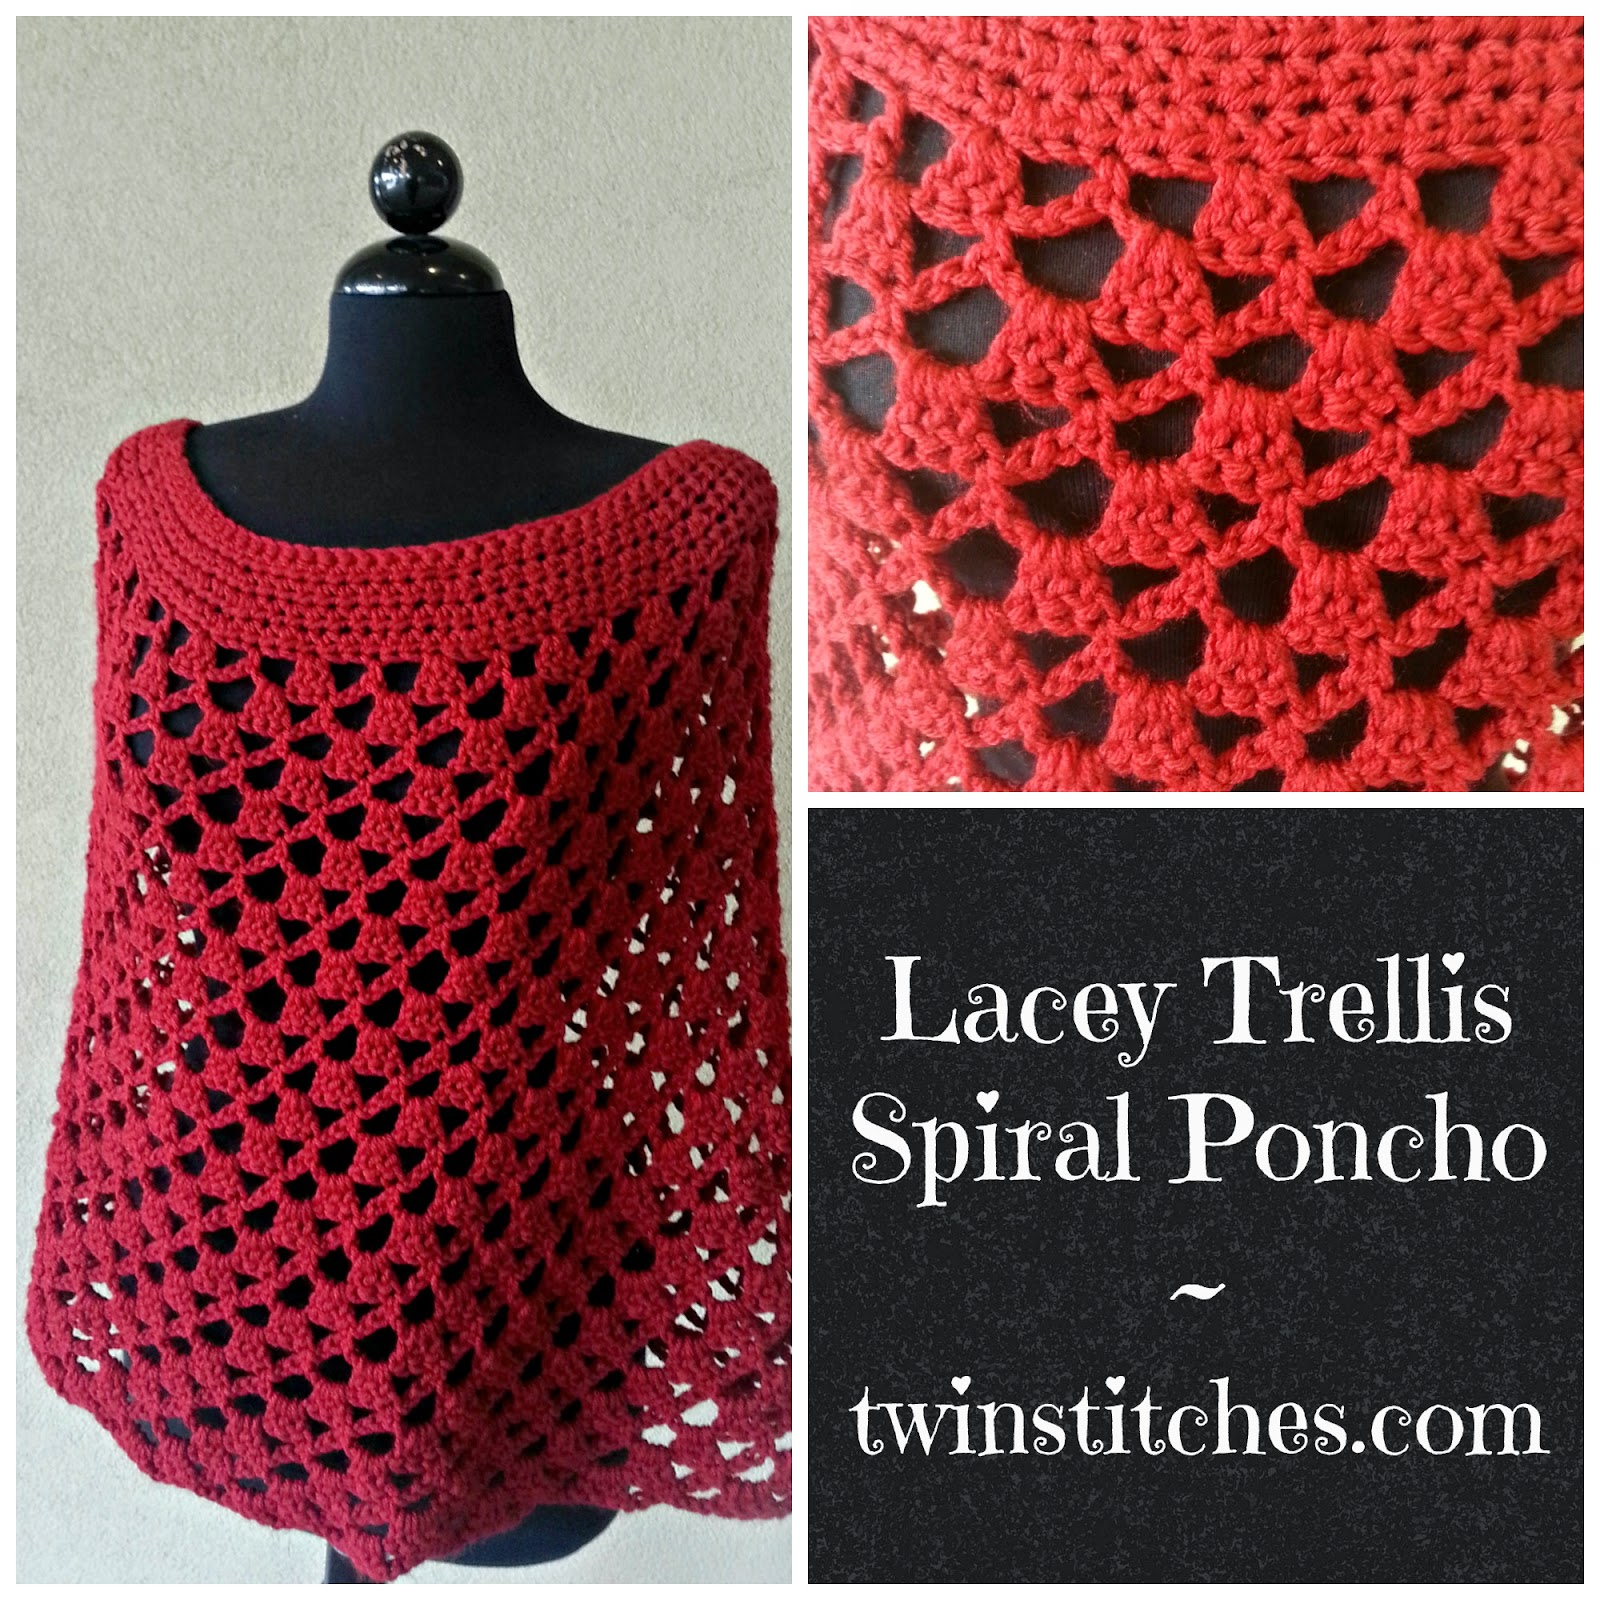 Tw-In Stitches: Update to Lacey Trellis Spiral Poncho Pattern | Tw ...